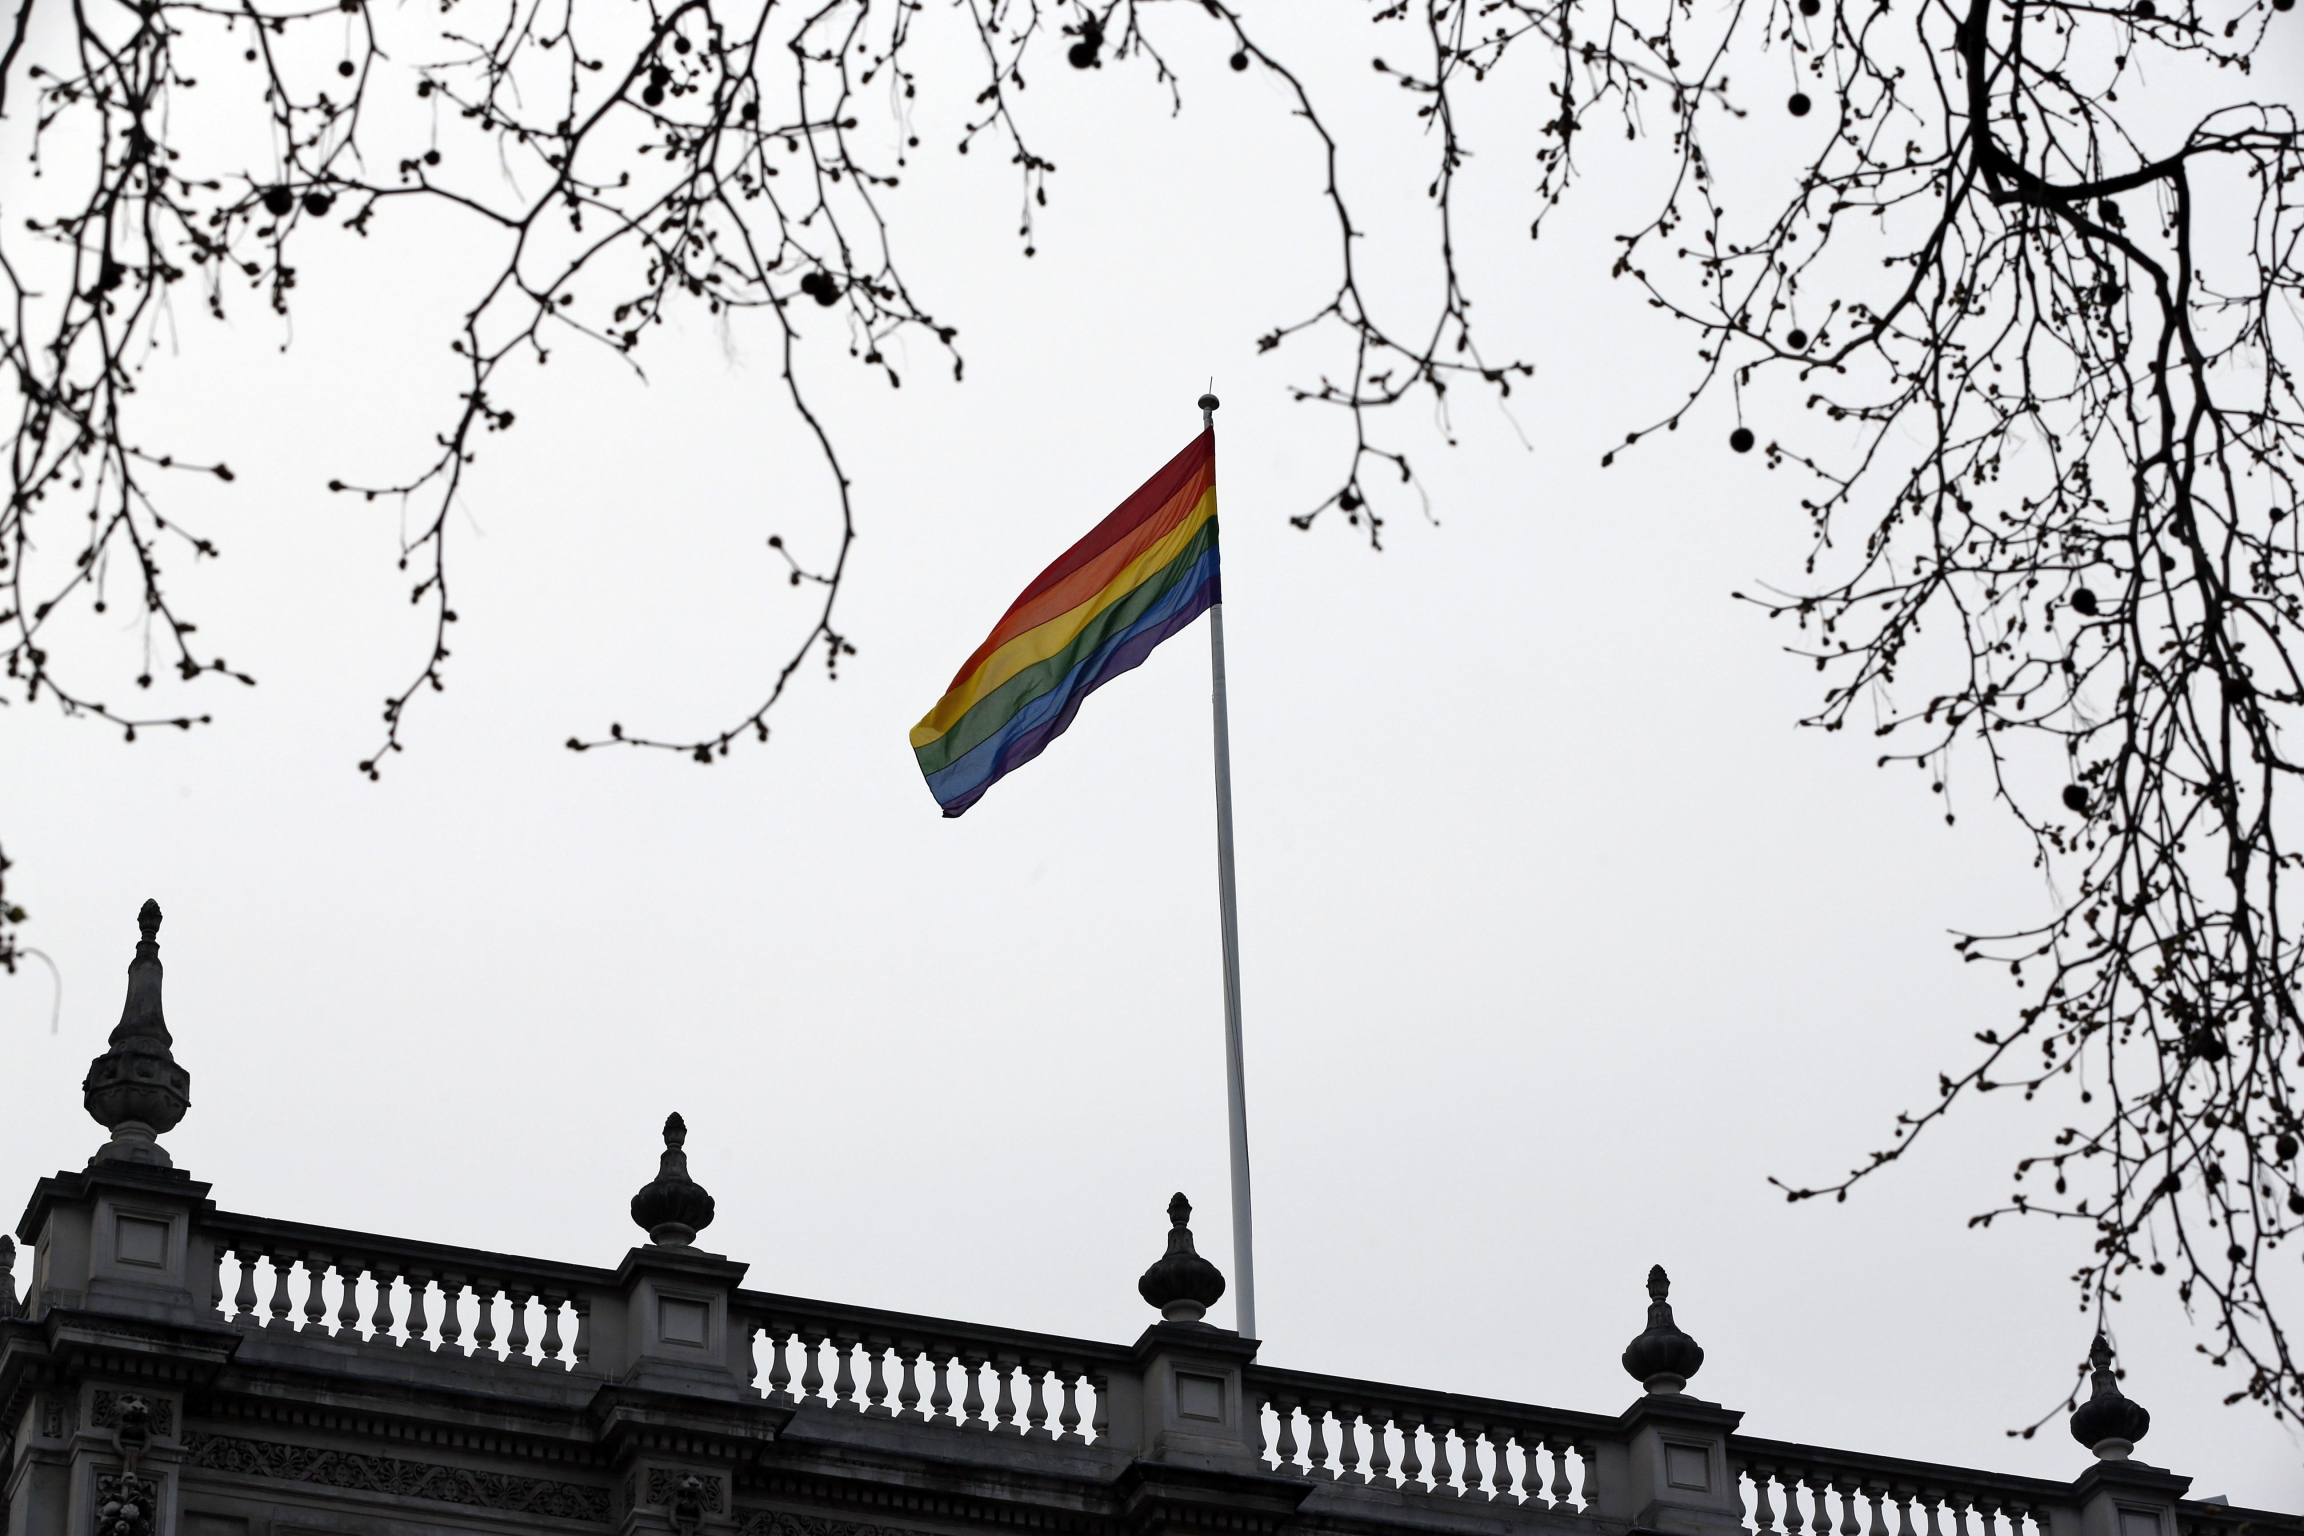 The rainbow flag, a symbol of the lesbian, gay, bisexual, and transgender community, flies over the British Government Cabinet Offices building, in central London, Friday, March 28, 2014.